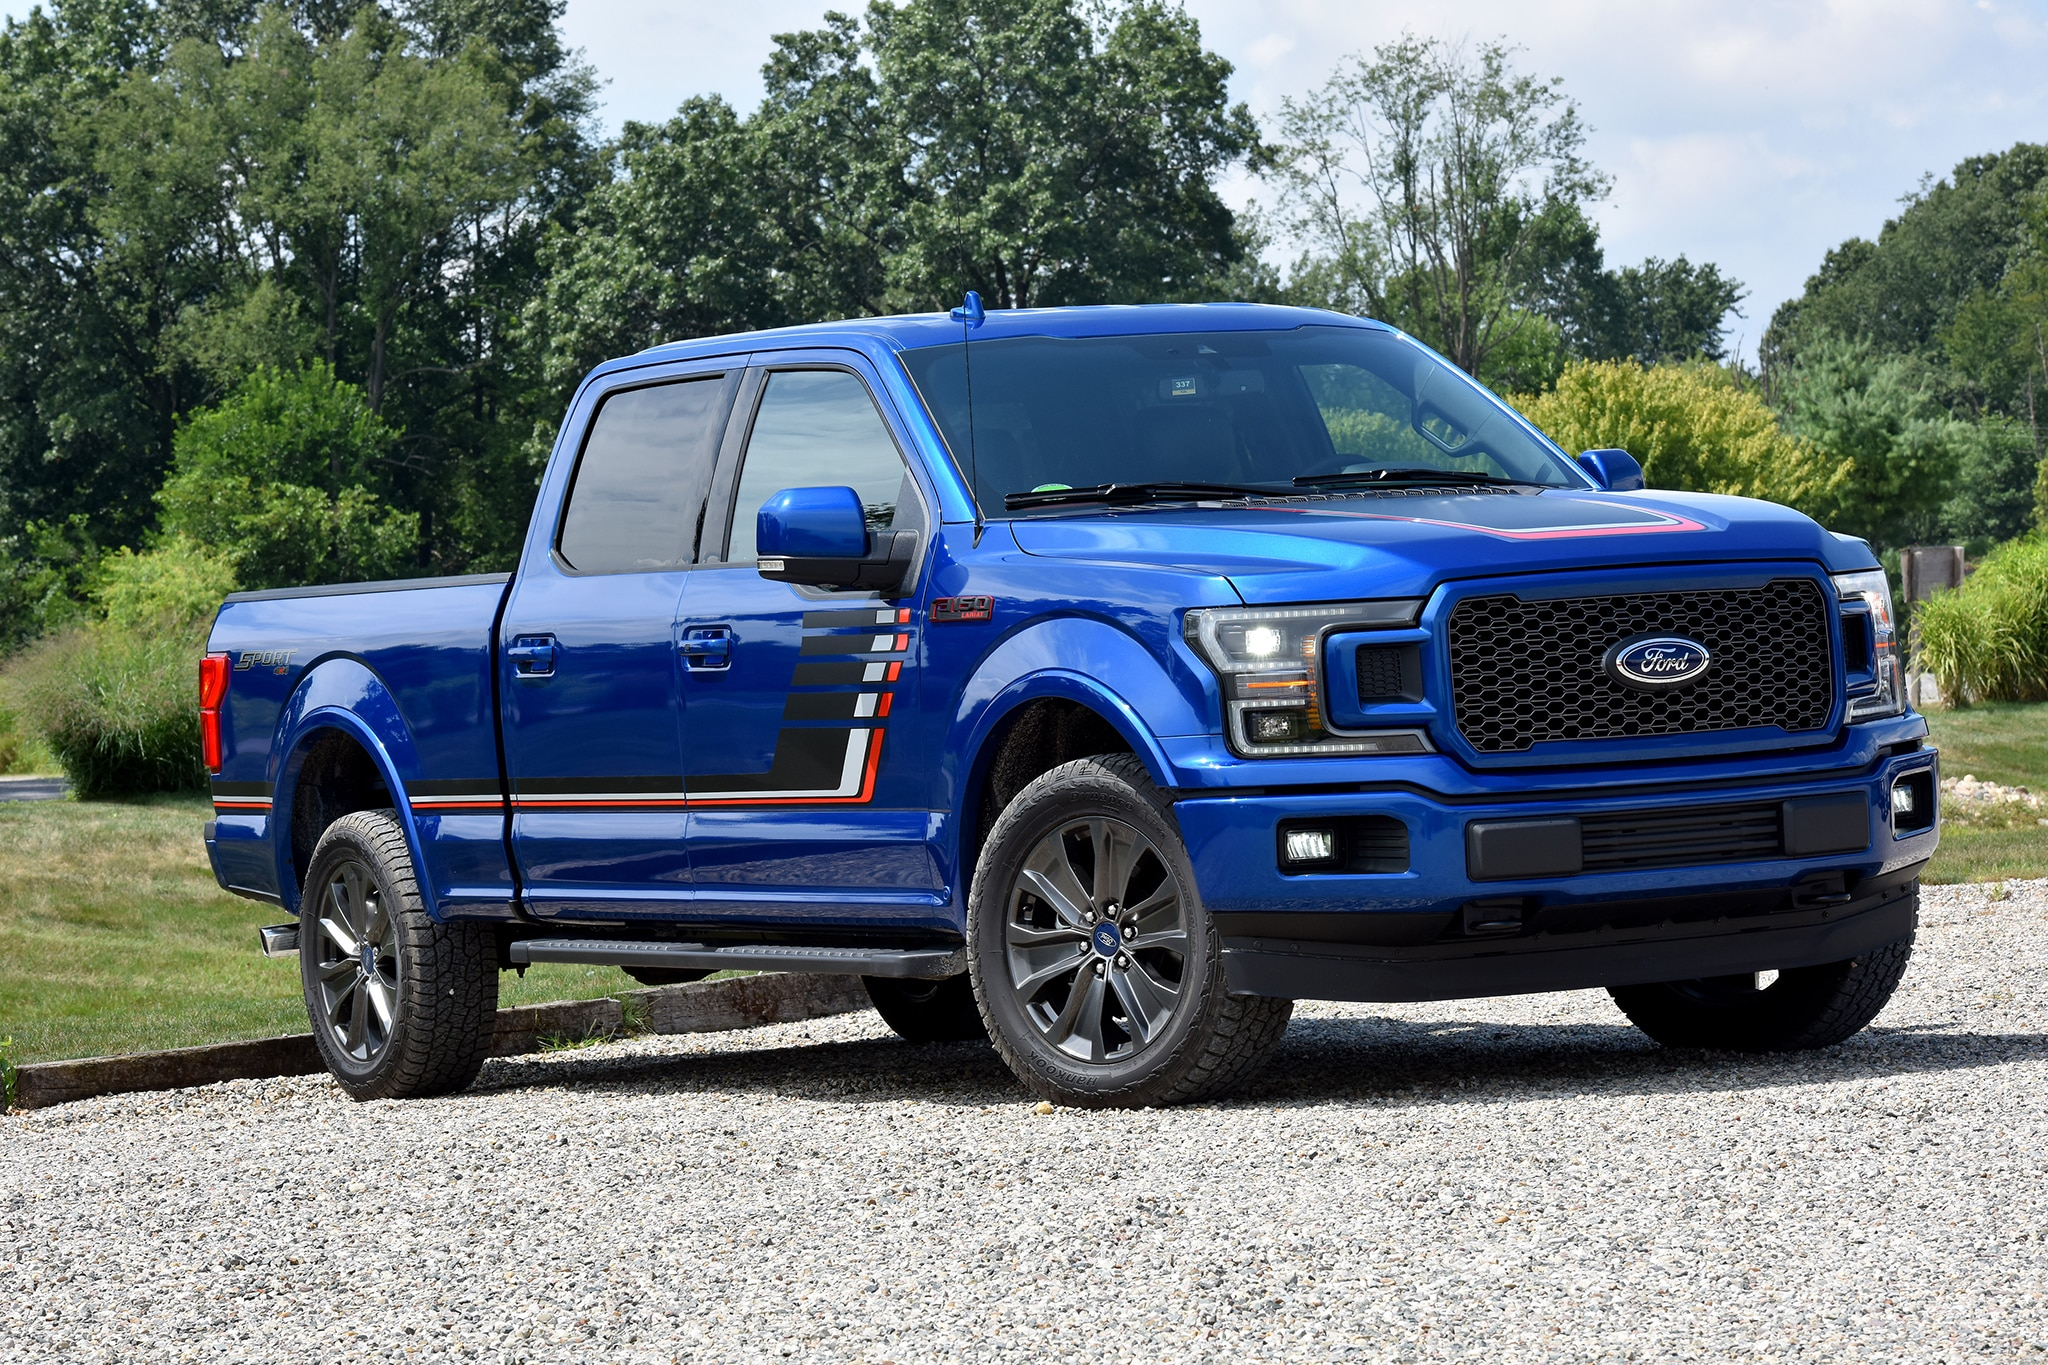 Ford Adds 3 0 liter Power Stroke Diesel to F 150 Lineup